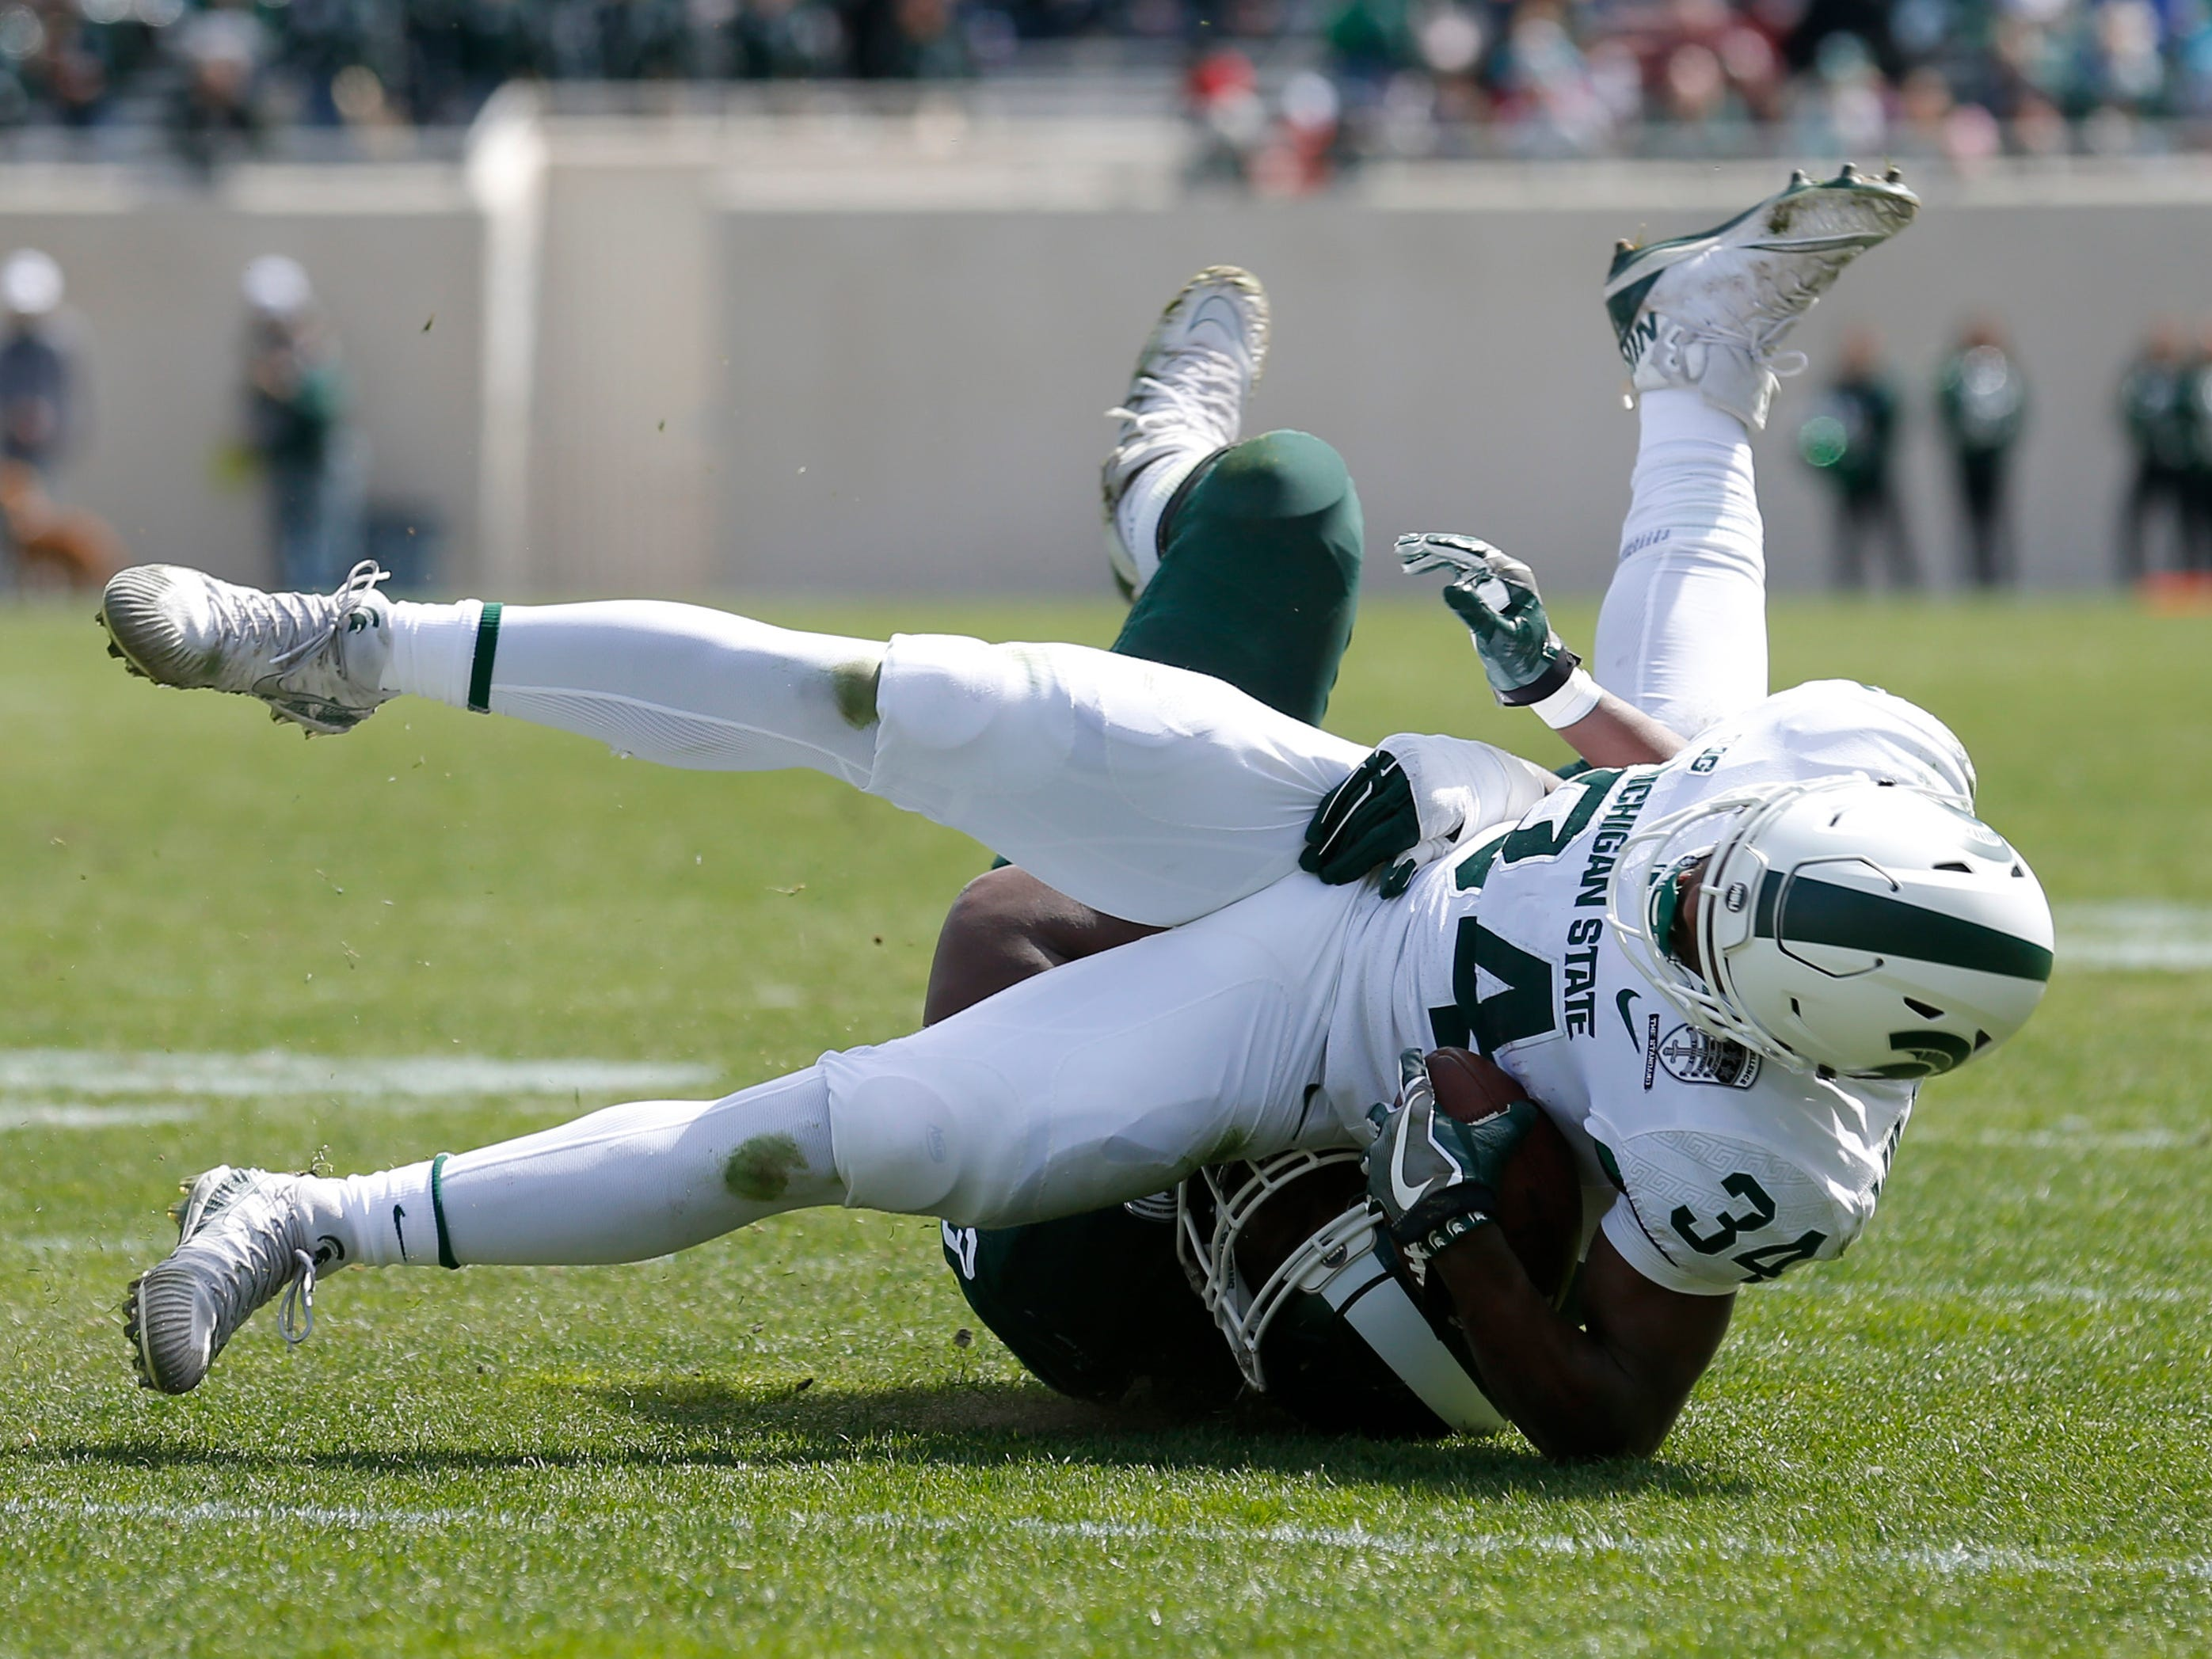 Michigan State's Anthony Williams (34) is tackled by Naquan Jones during an NCAA college football spring scrimmage game, Saturday, April 13, 2019, in East Lansing, Mich. (AP Photo/Al Goldis)